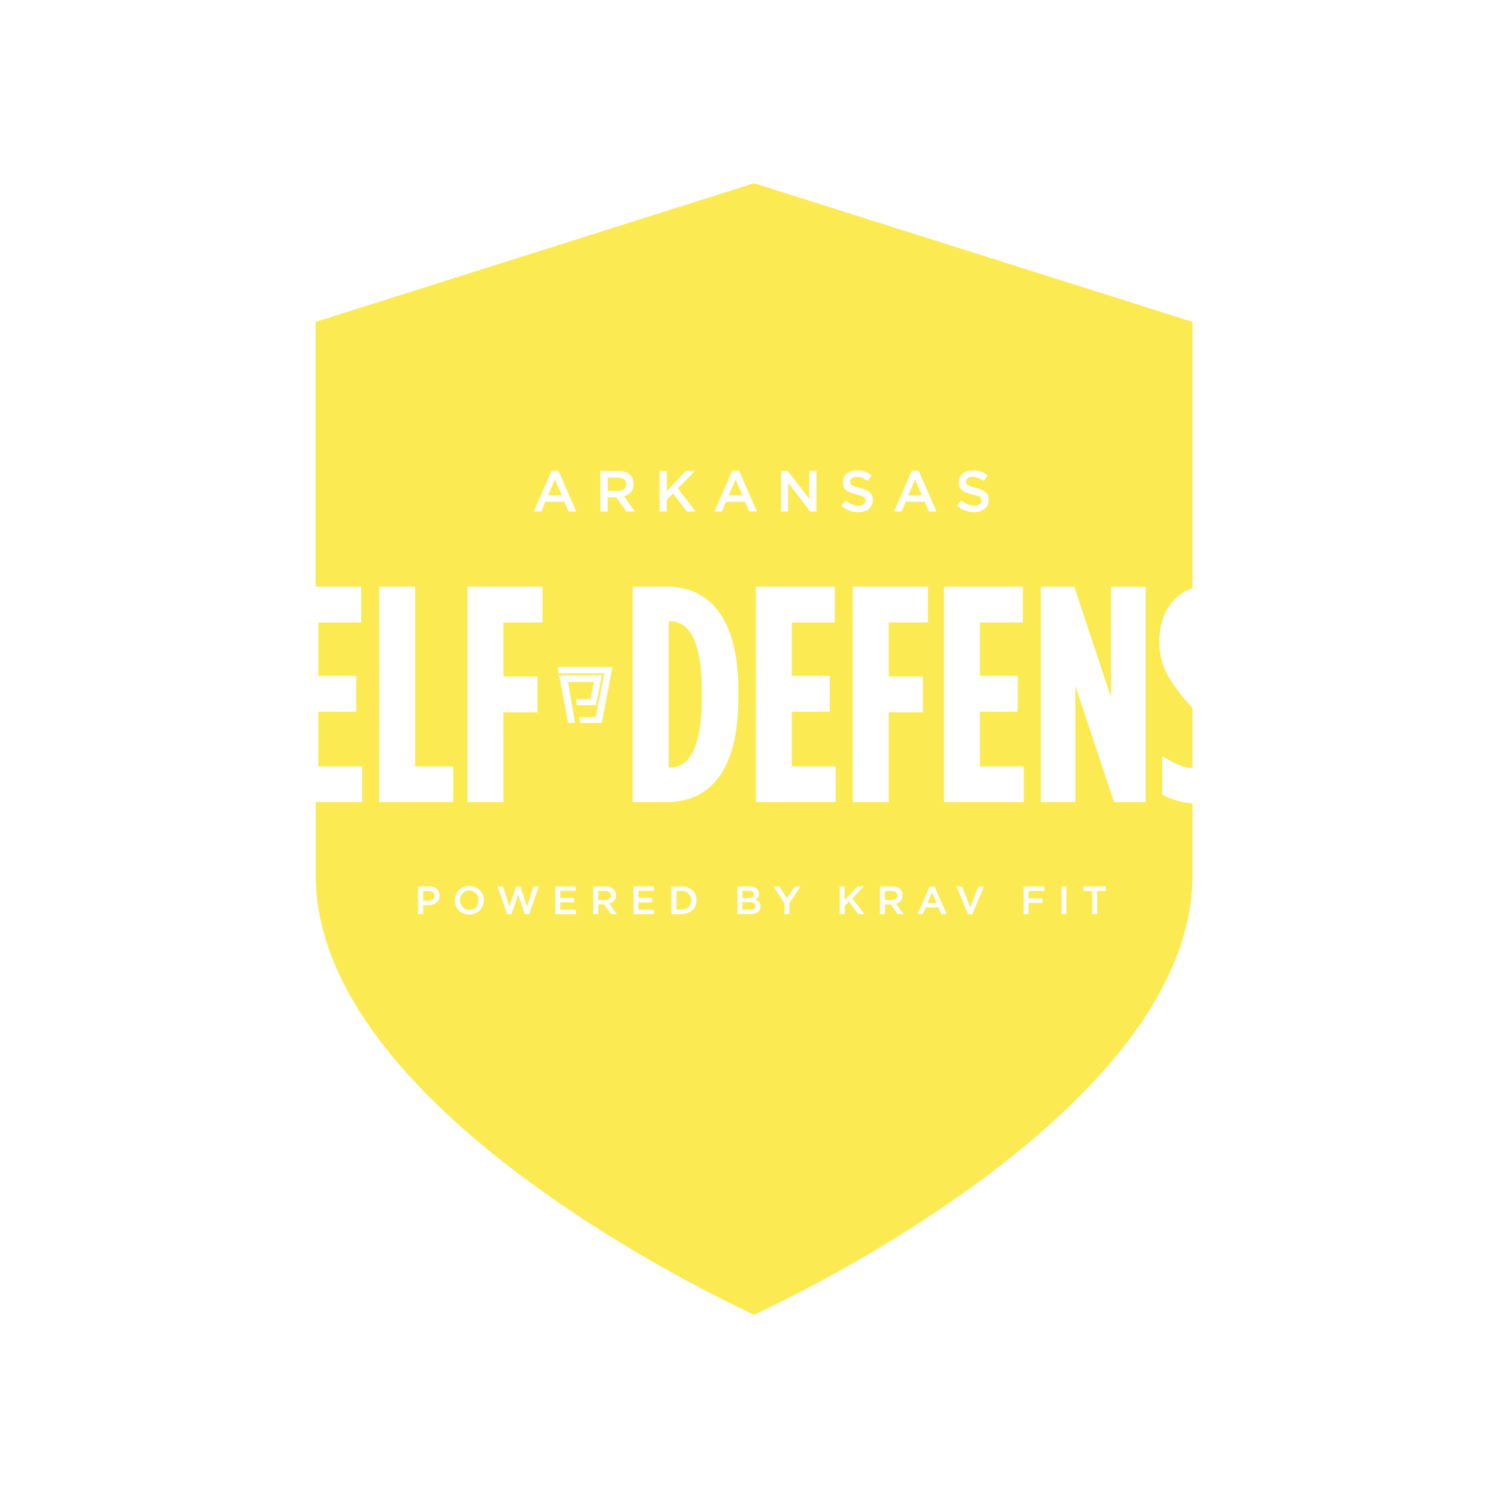 Arkansas Self Defense - Powered by Krav Fit